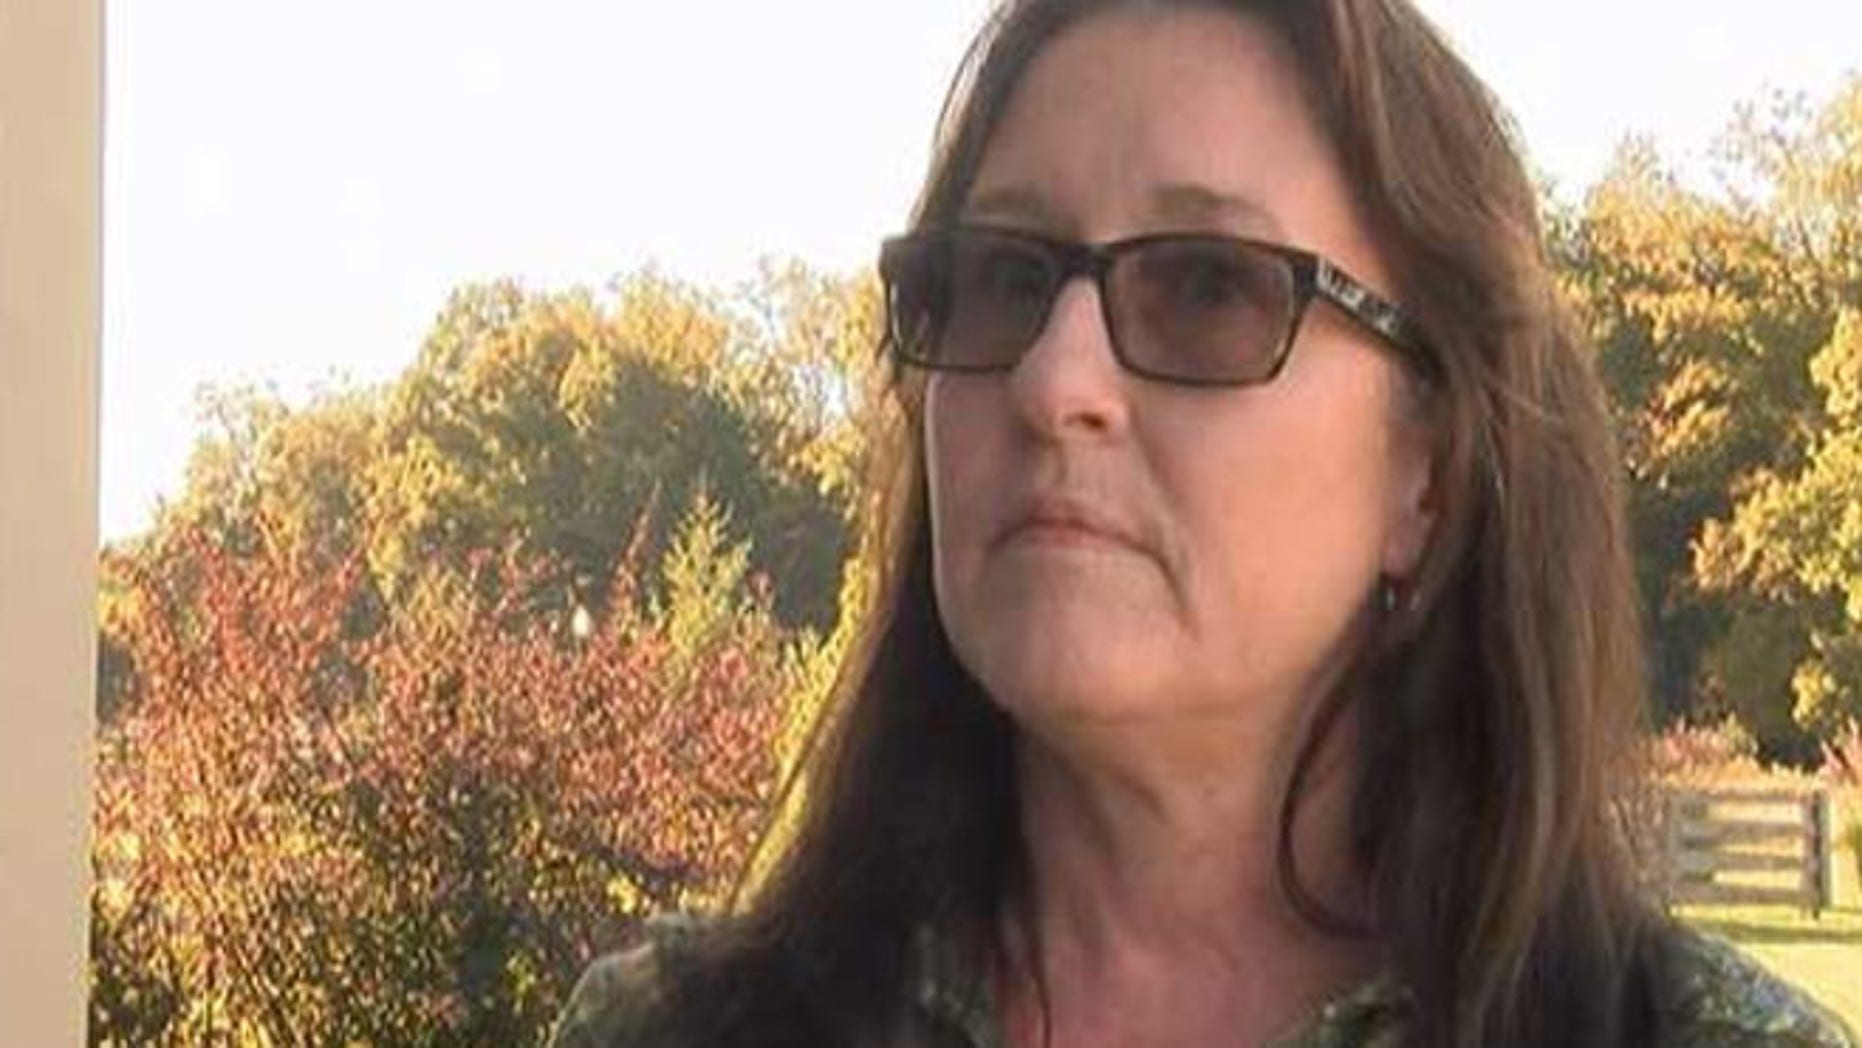 Donna Smith said she hopes to show solidarity with fellow workers at her IRS office.